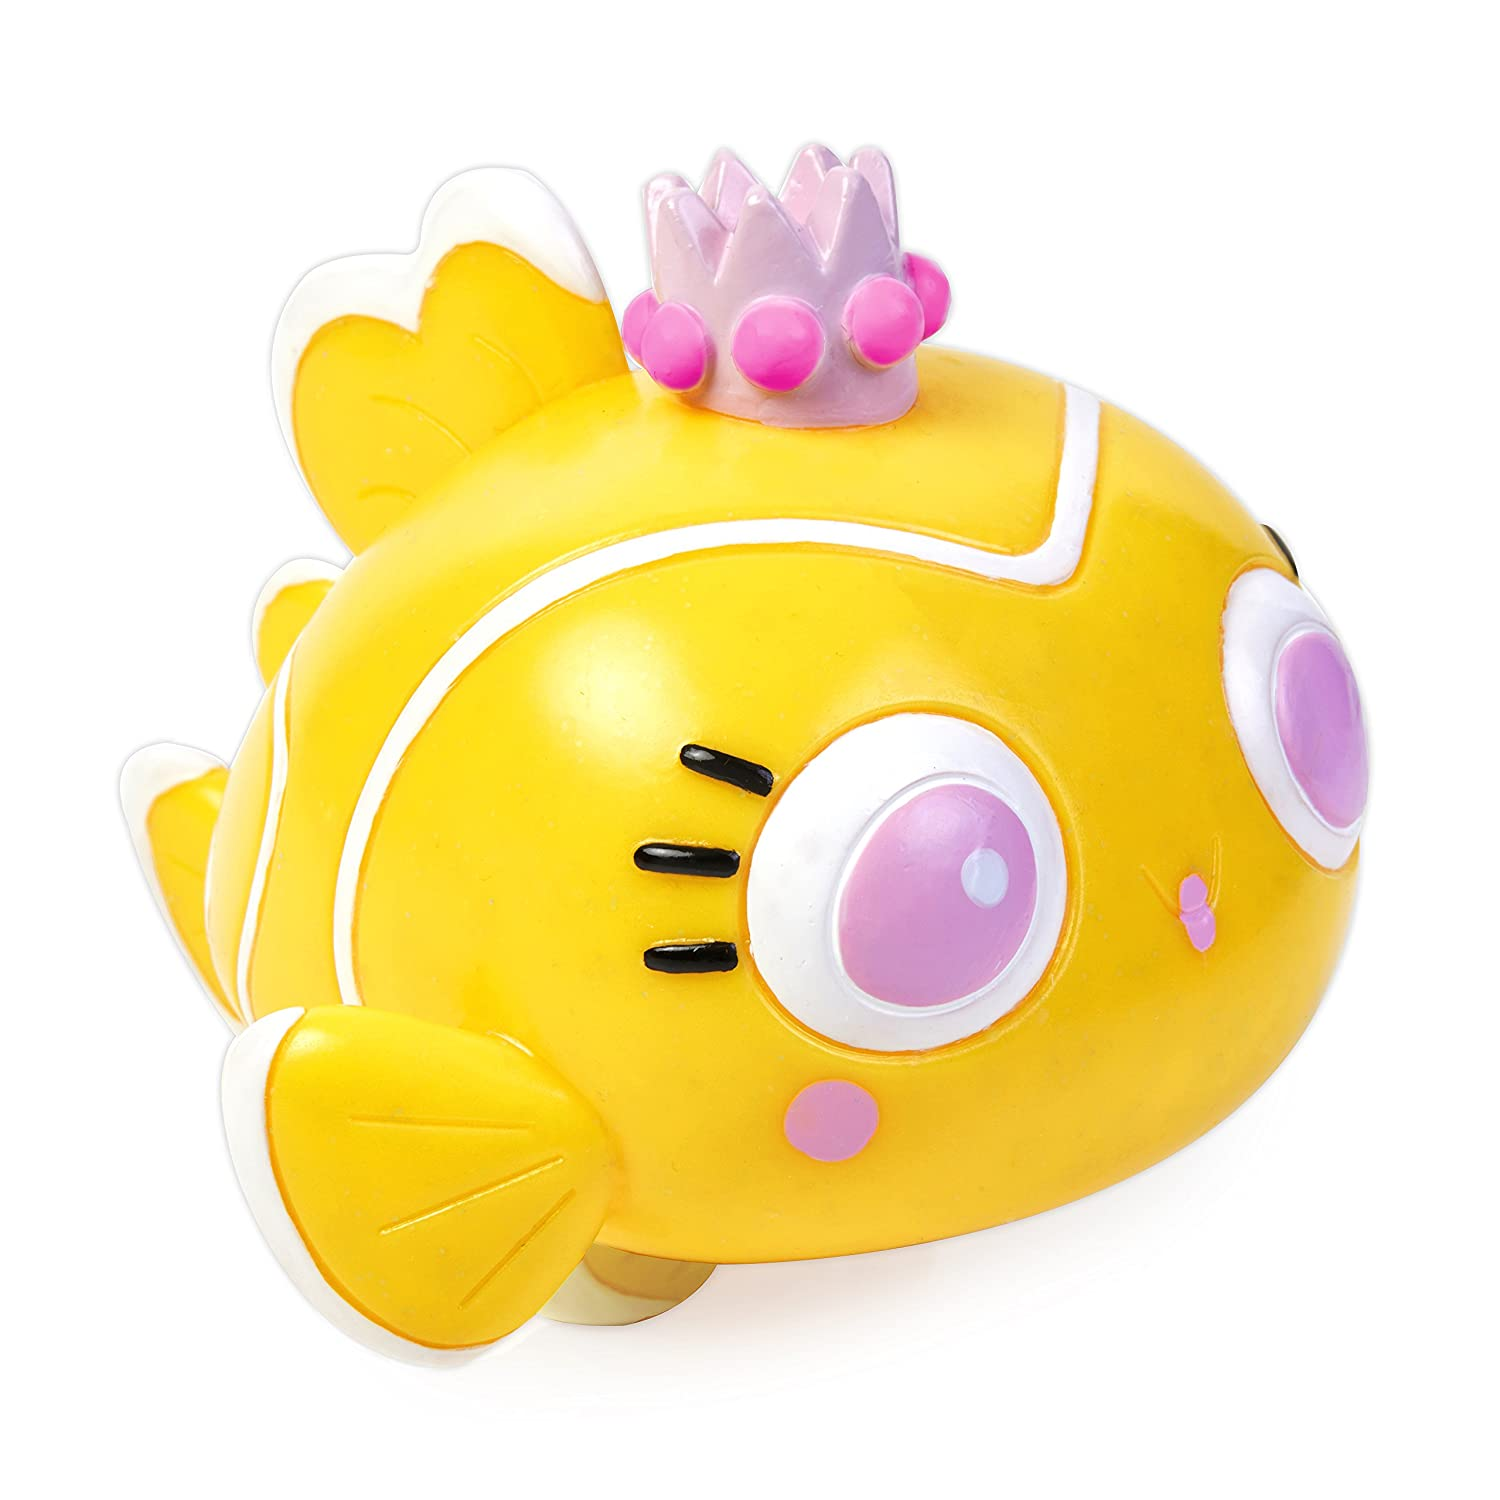 "Floating Water Toys for Toddlers and Kids with Reusable Carrying Case Bling2o Bling Buddiez /""Princess Fish/"""